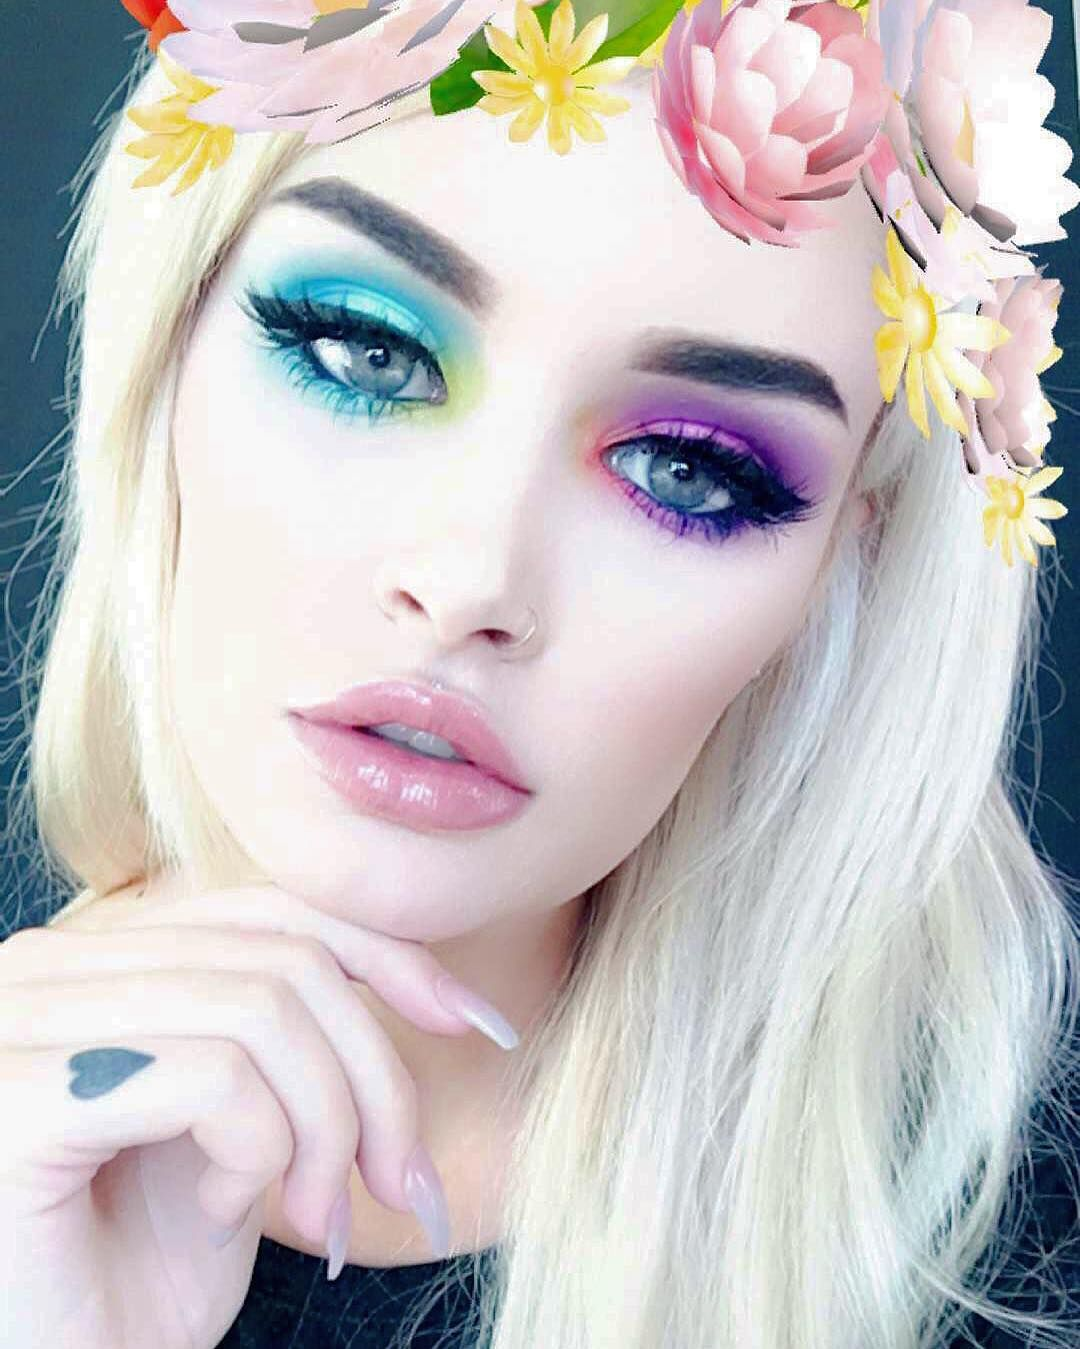 Fairy Hair And Makeup: V͓̽i͓̽o͓̽l͓̽e͓̽t͓̽t͓̽a͓̽O͓̽p͓̽h͓̽e͓̽l͓̽i͓̽a͓̽ …